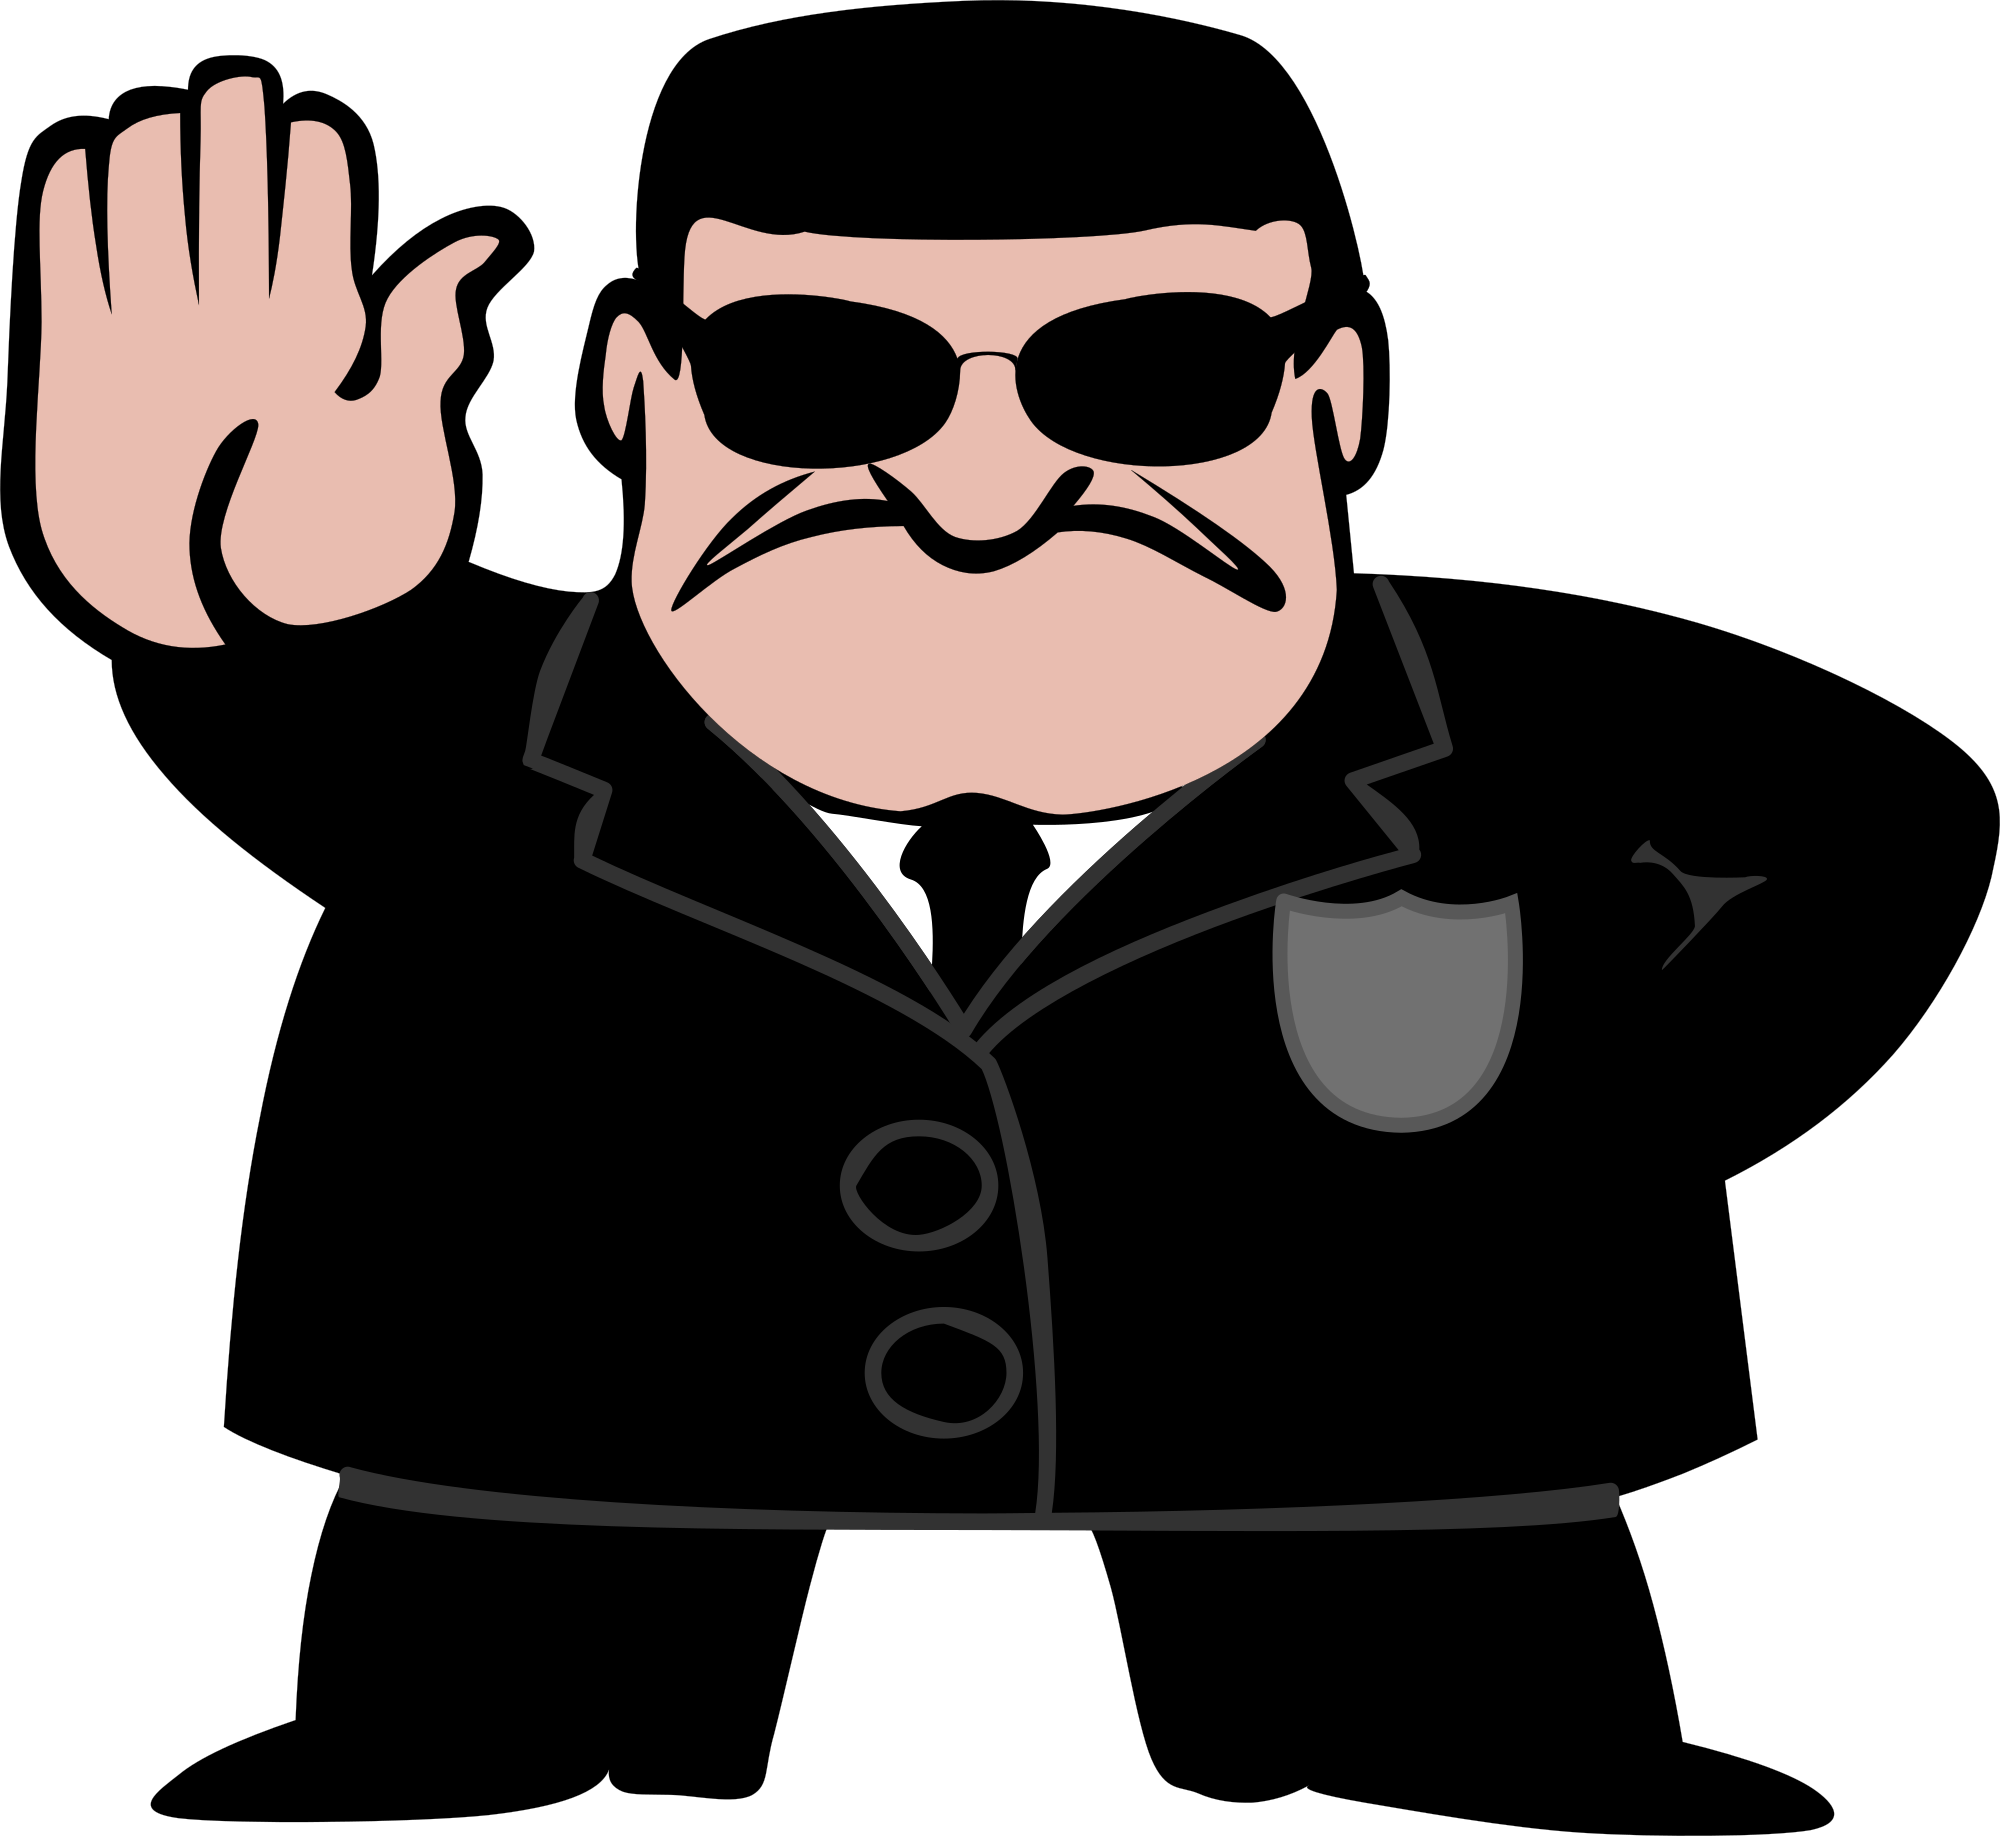 Free fbi police man stop clipart clipart and vector image